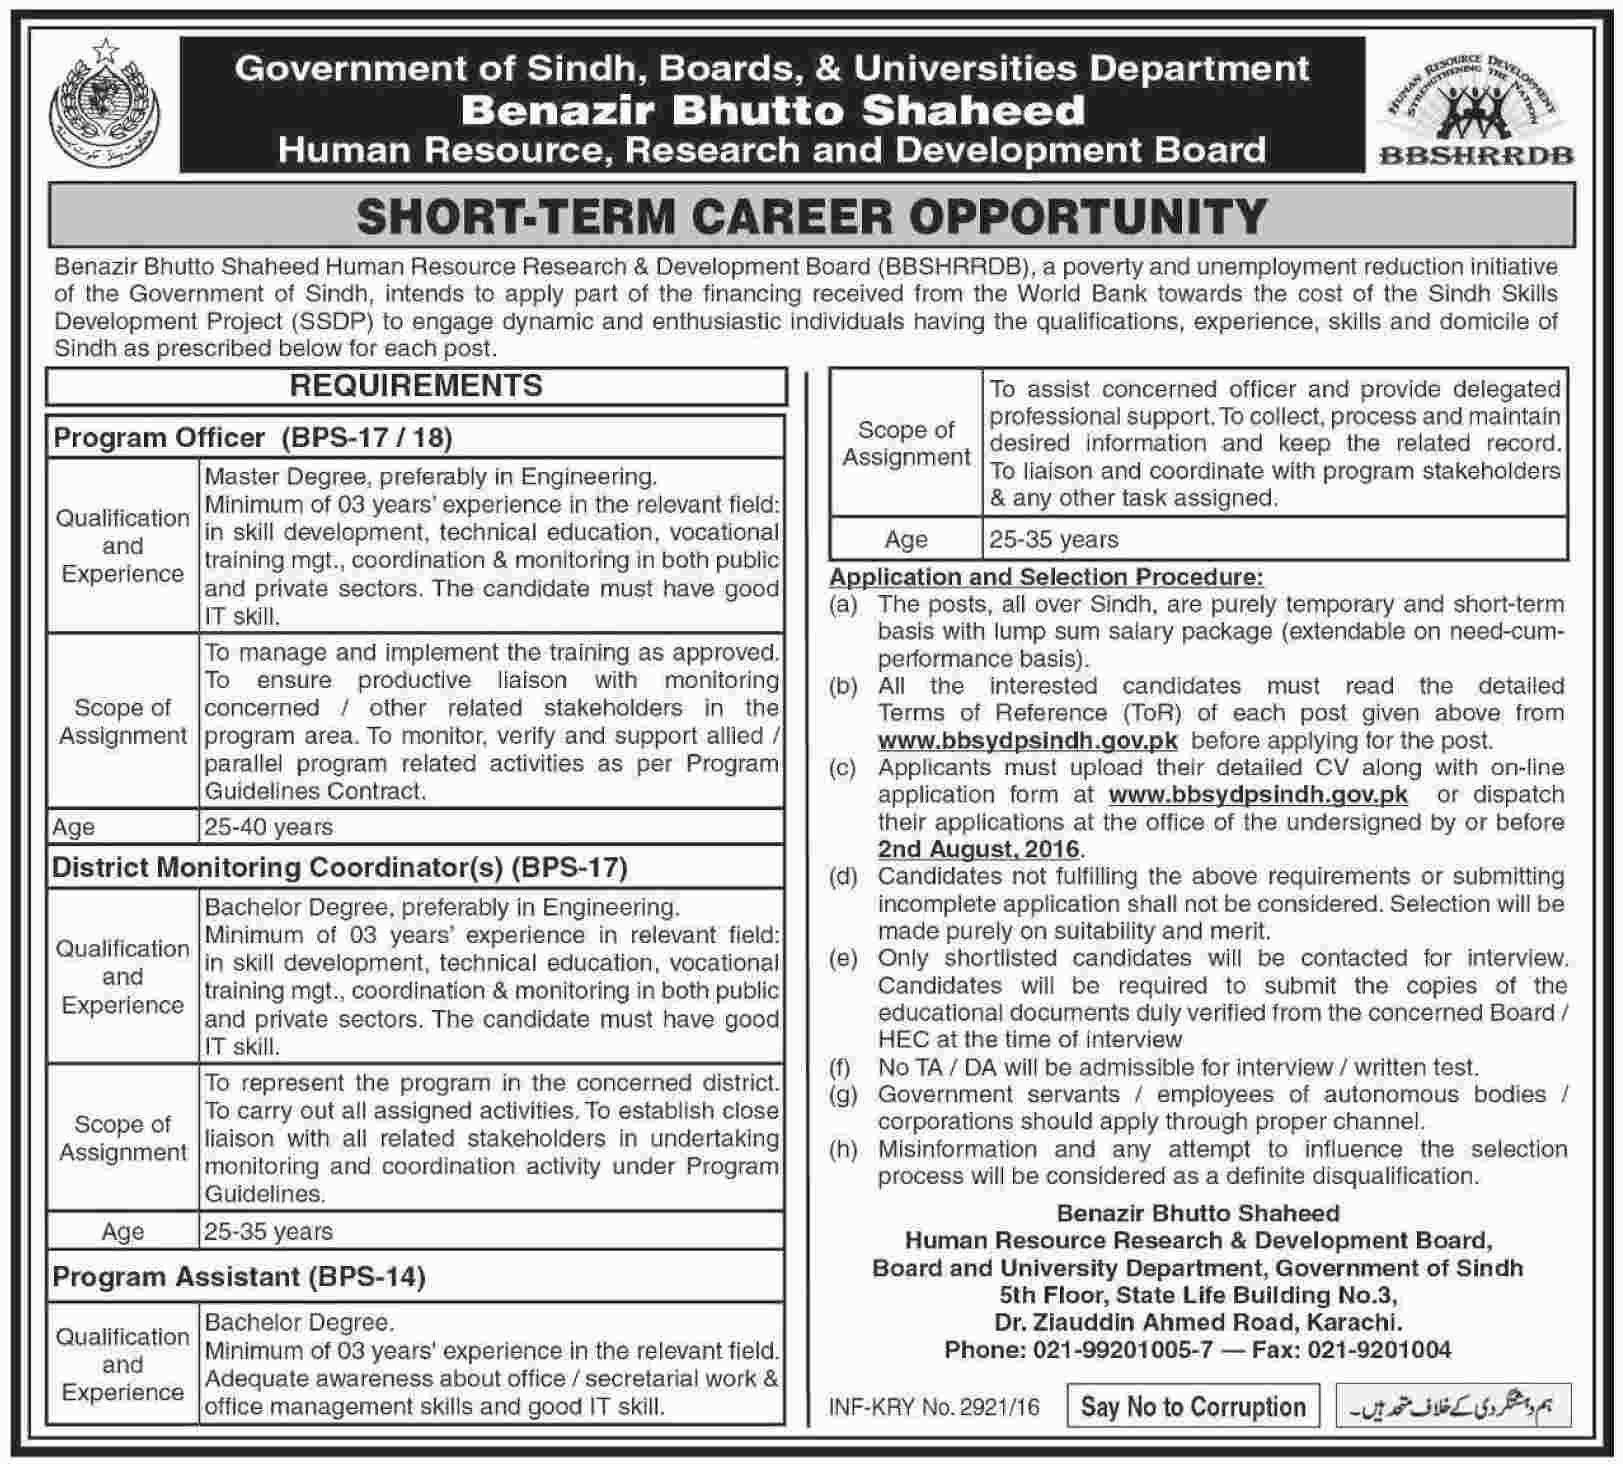 Government of Sindh Boards and Universities Department Jobs